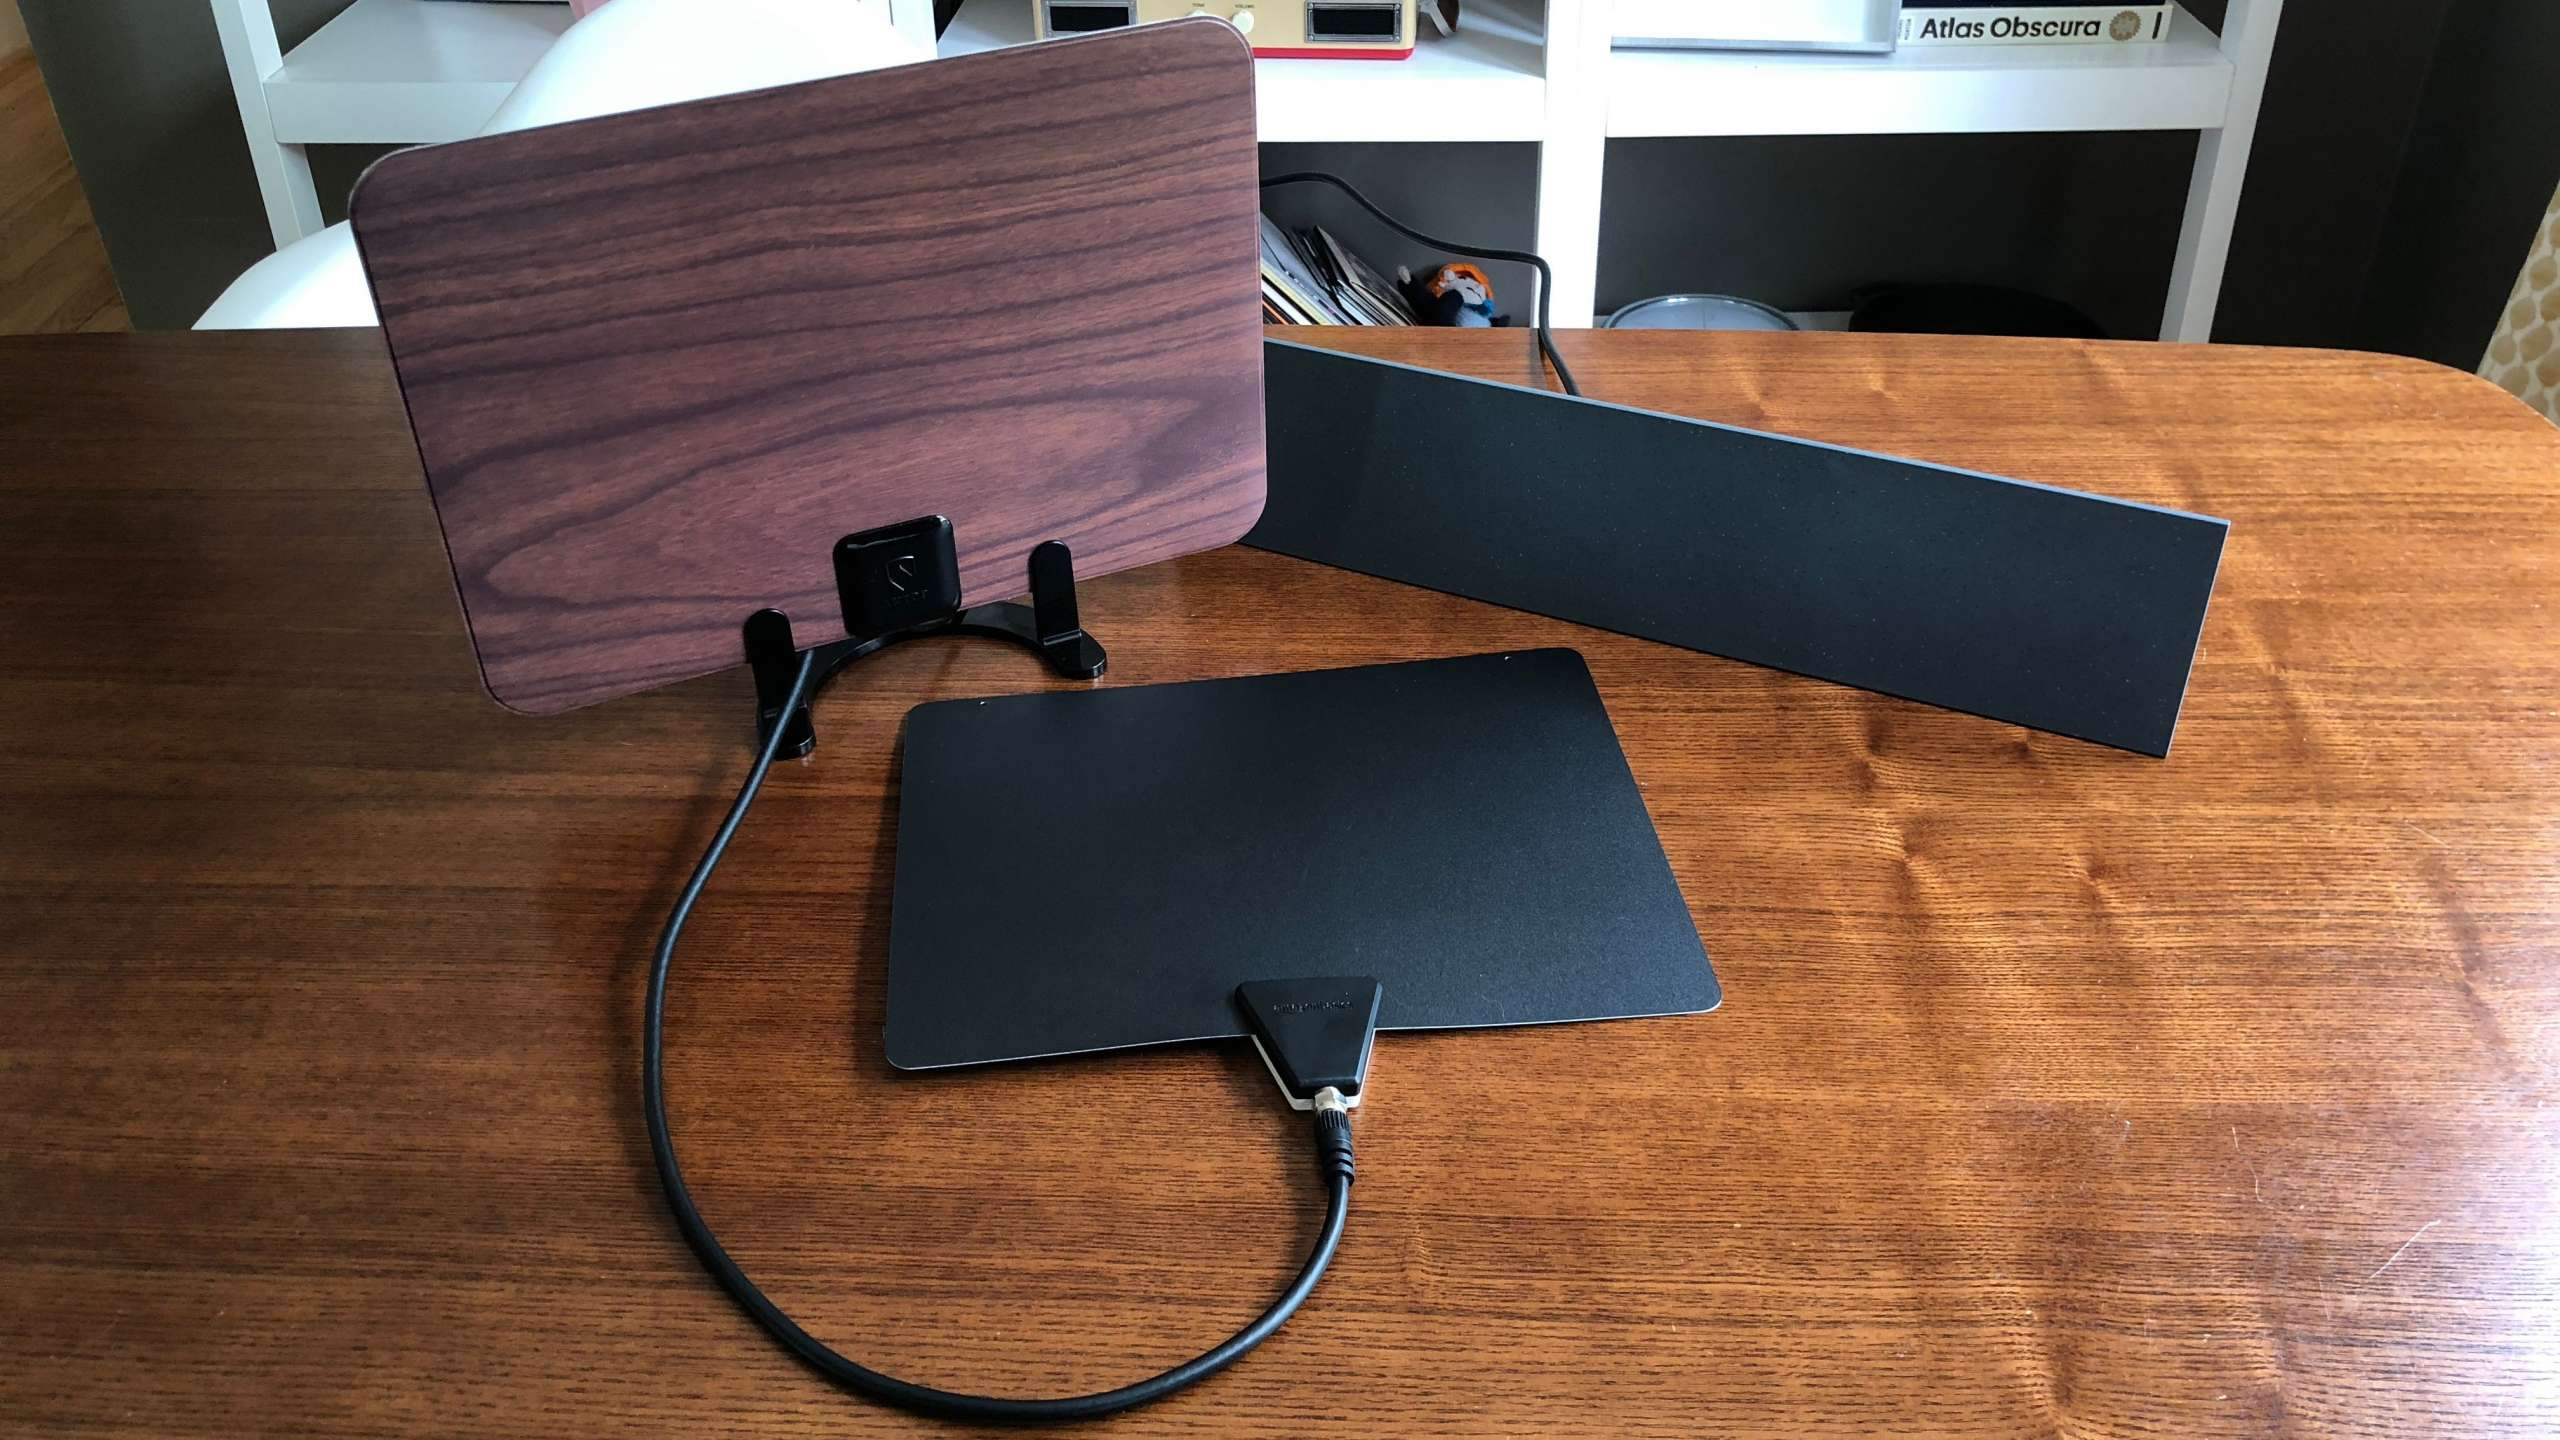 Indoor HDTV Antennas For Free to View OTA Channels